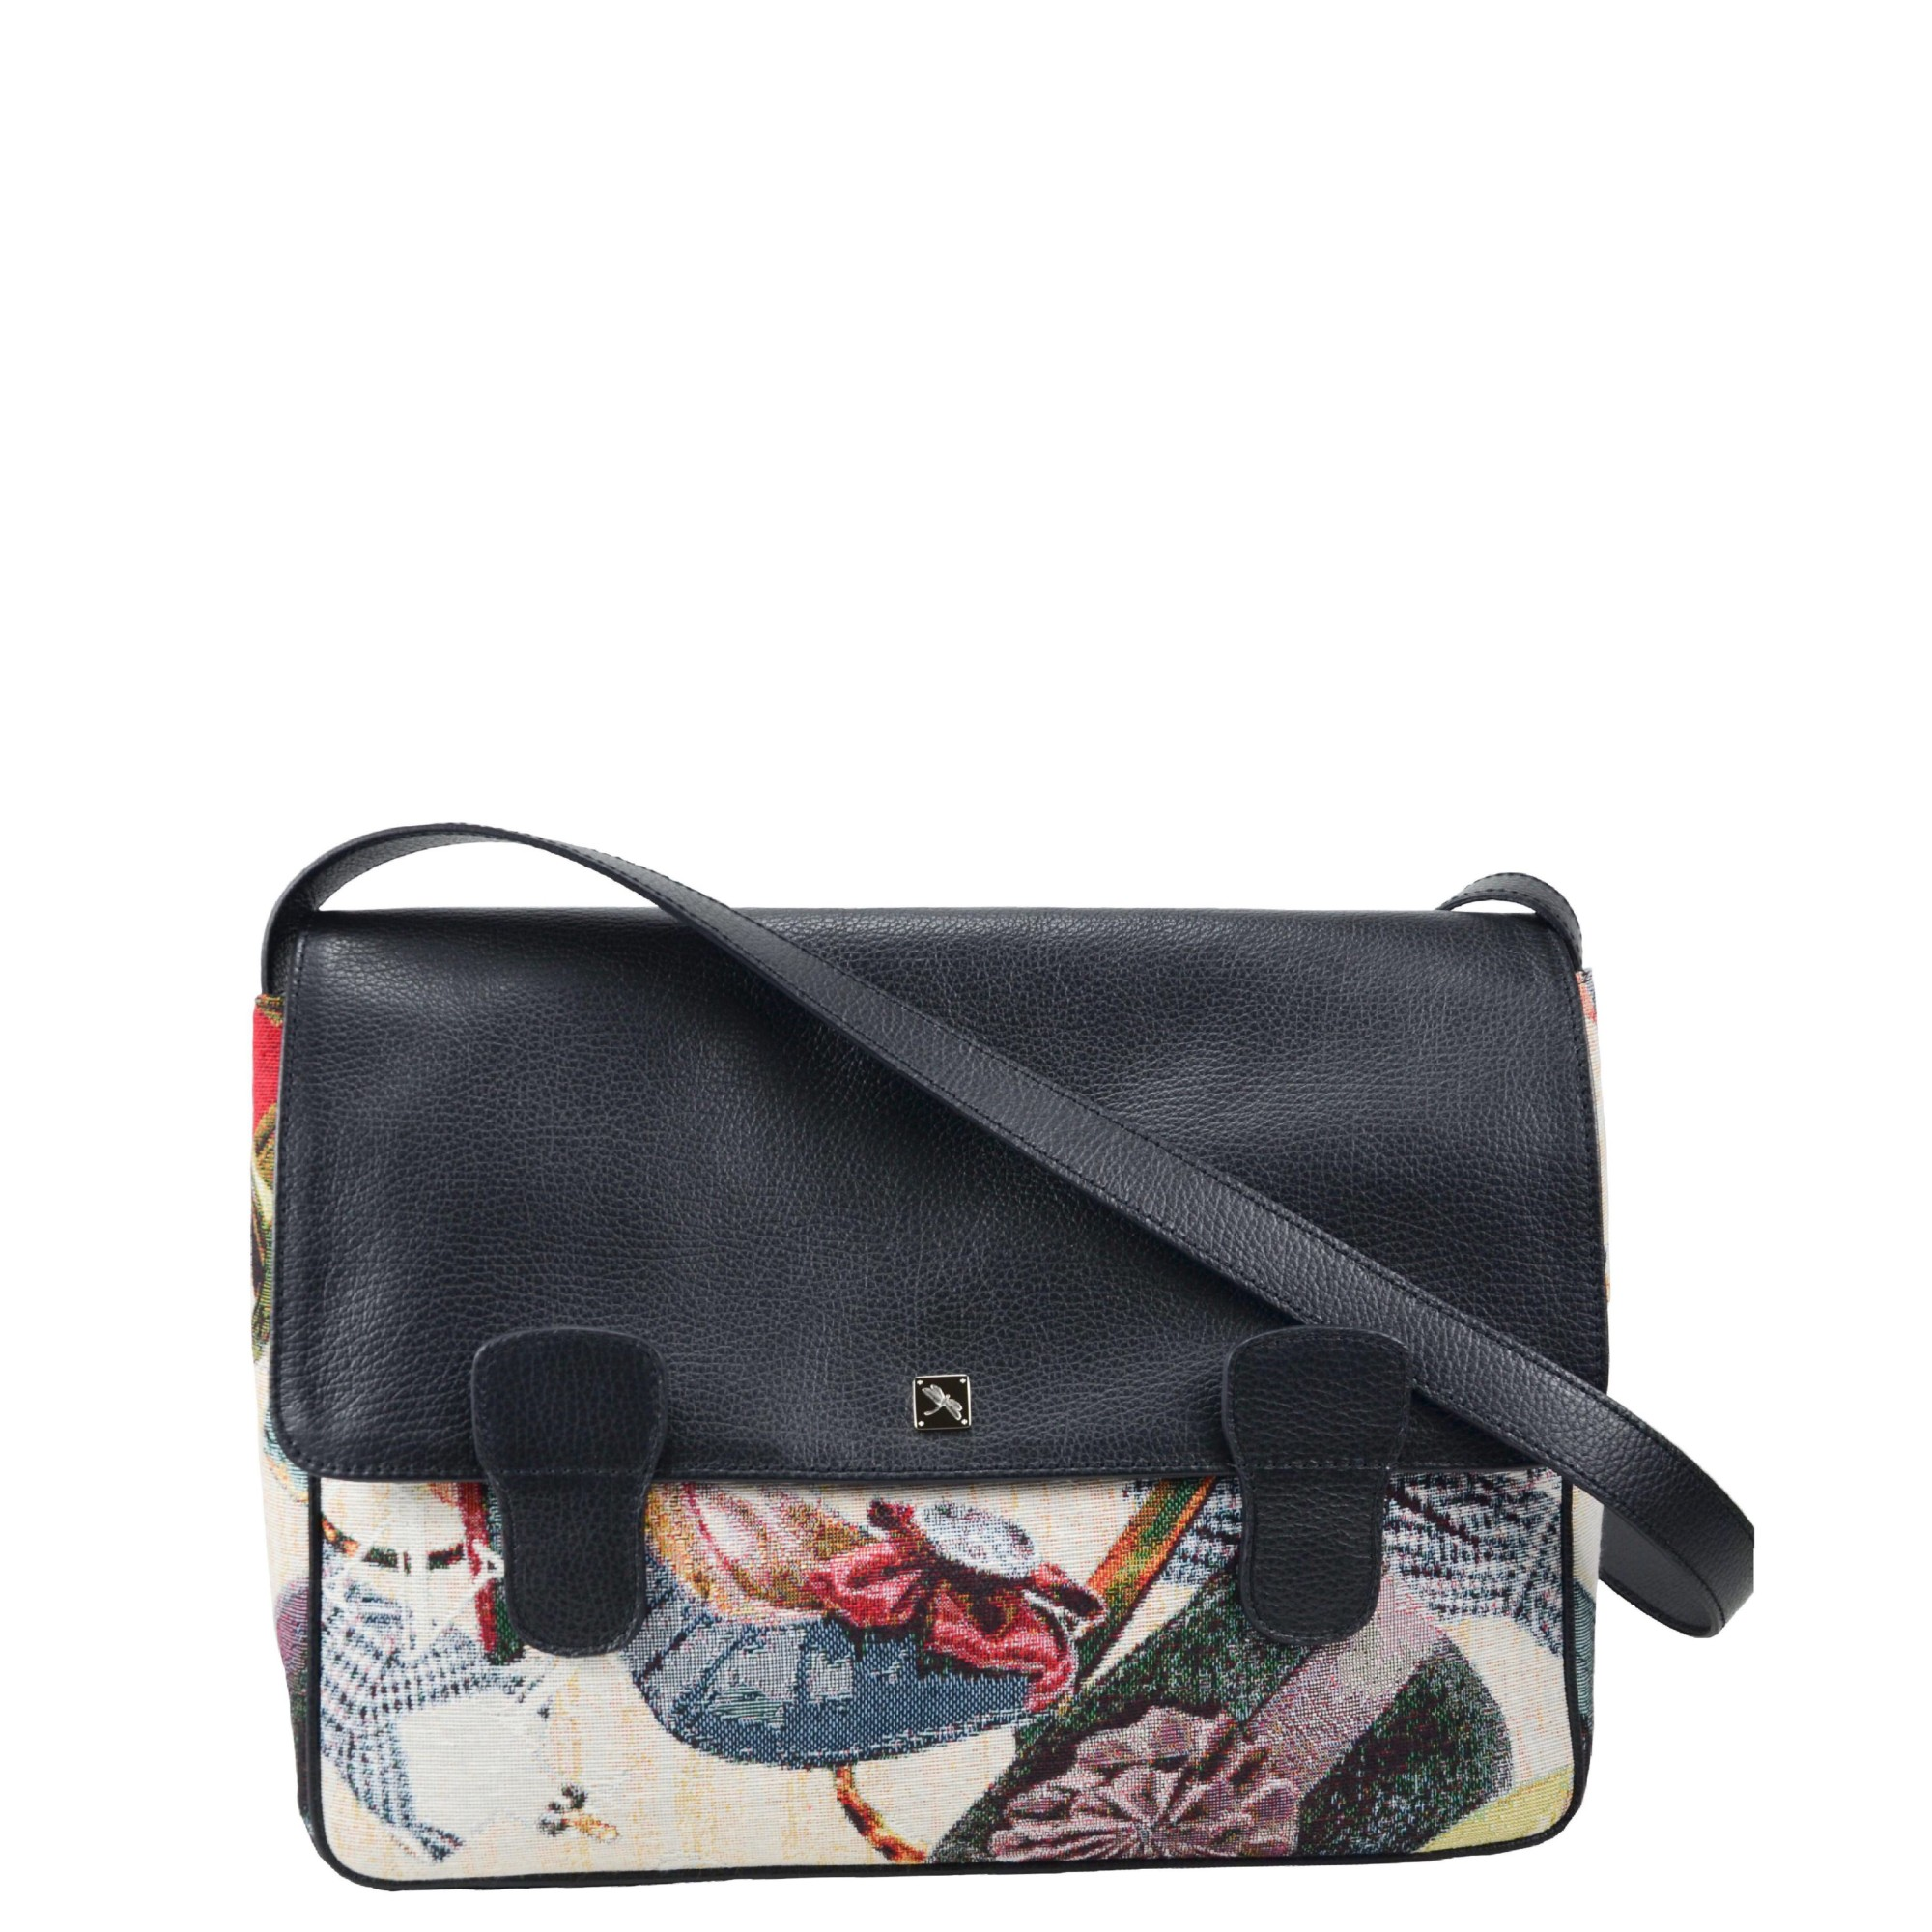 Alexandra Jacquard Black Messenger Bag